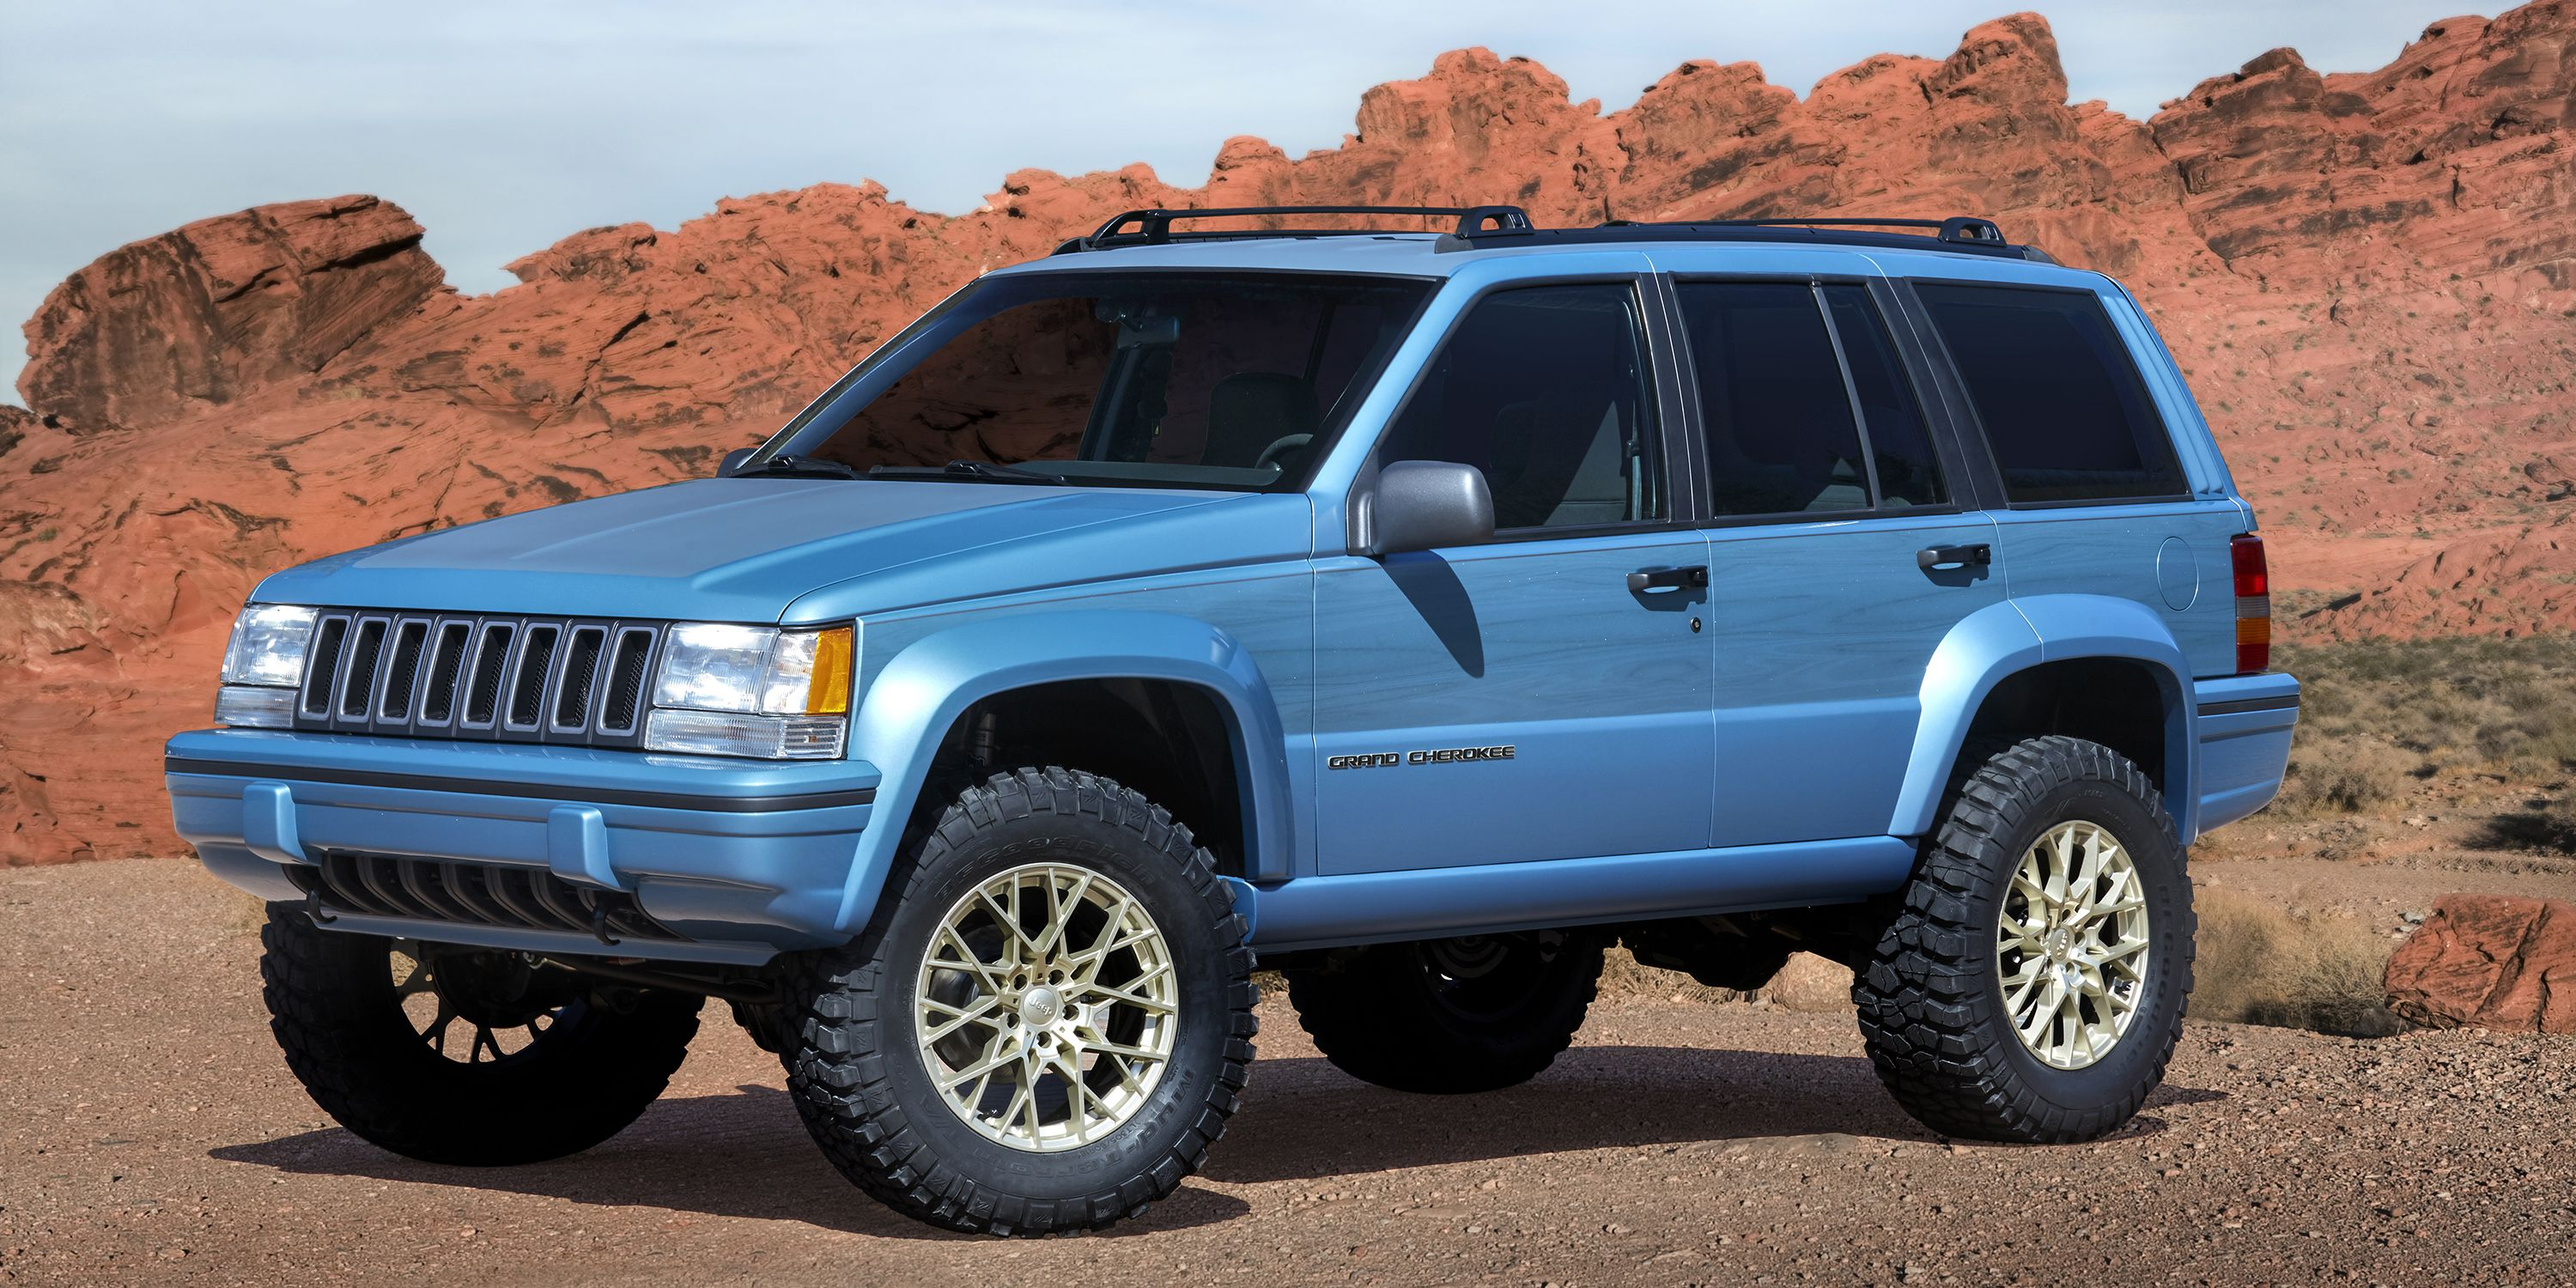 Jeep Built Five Concepts For Easter Jeep Safari But This Resto